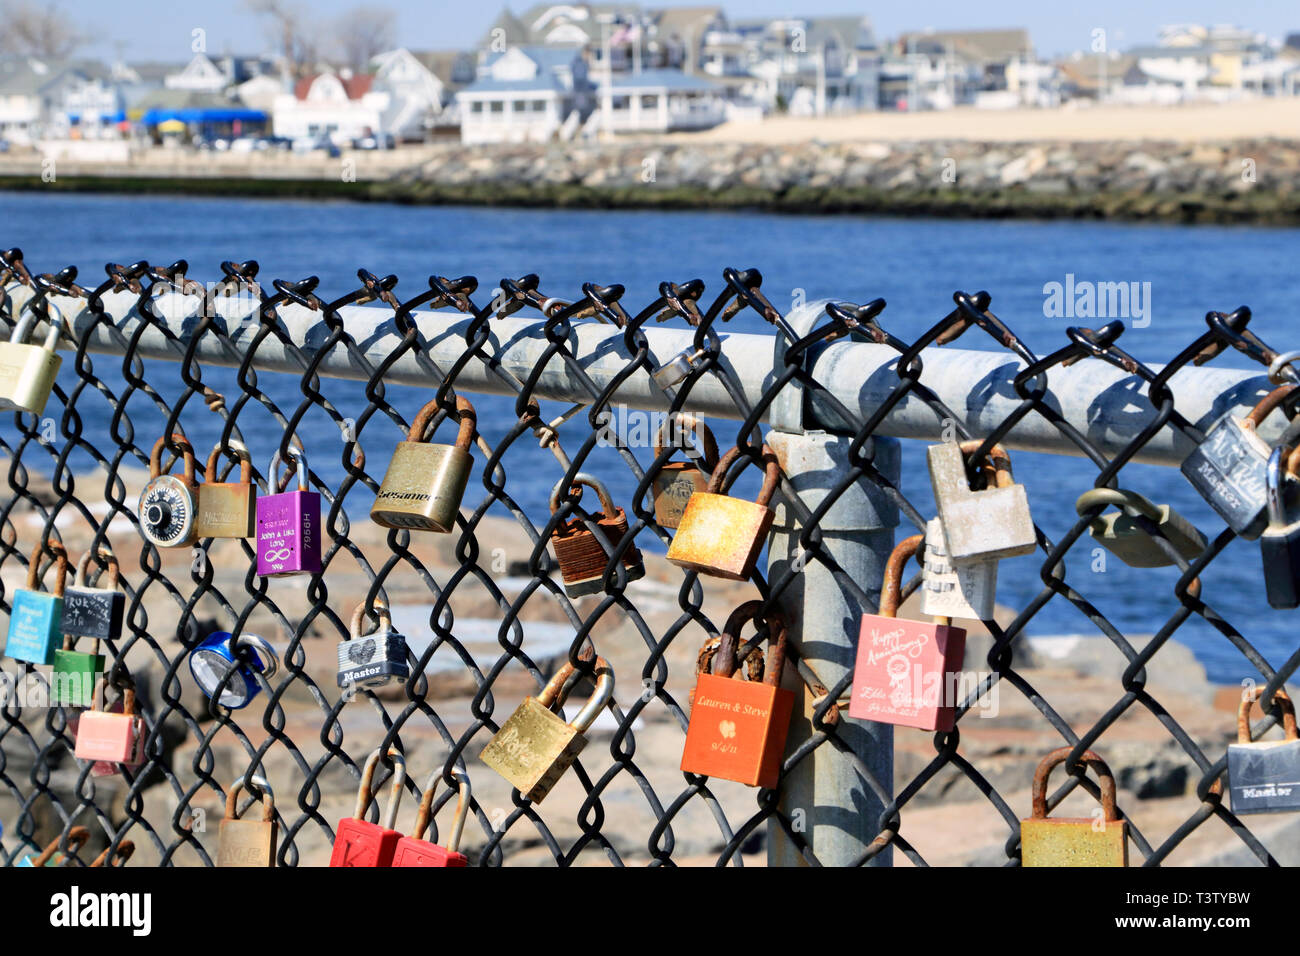 Manasquan Stock Photos & Manasquan Stock Images - Alamy